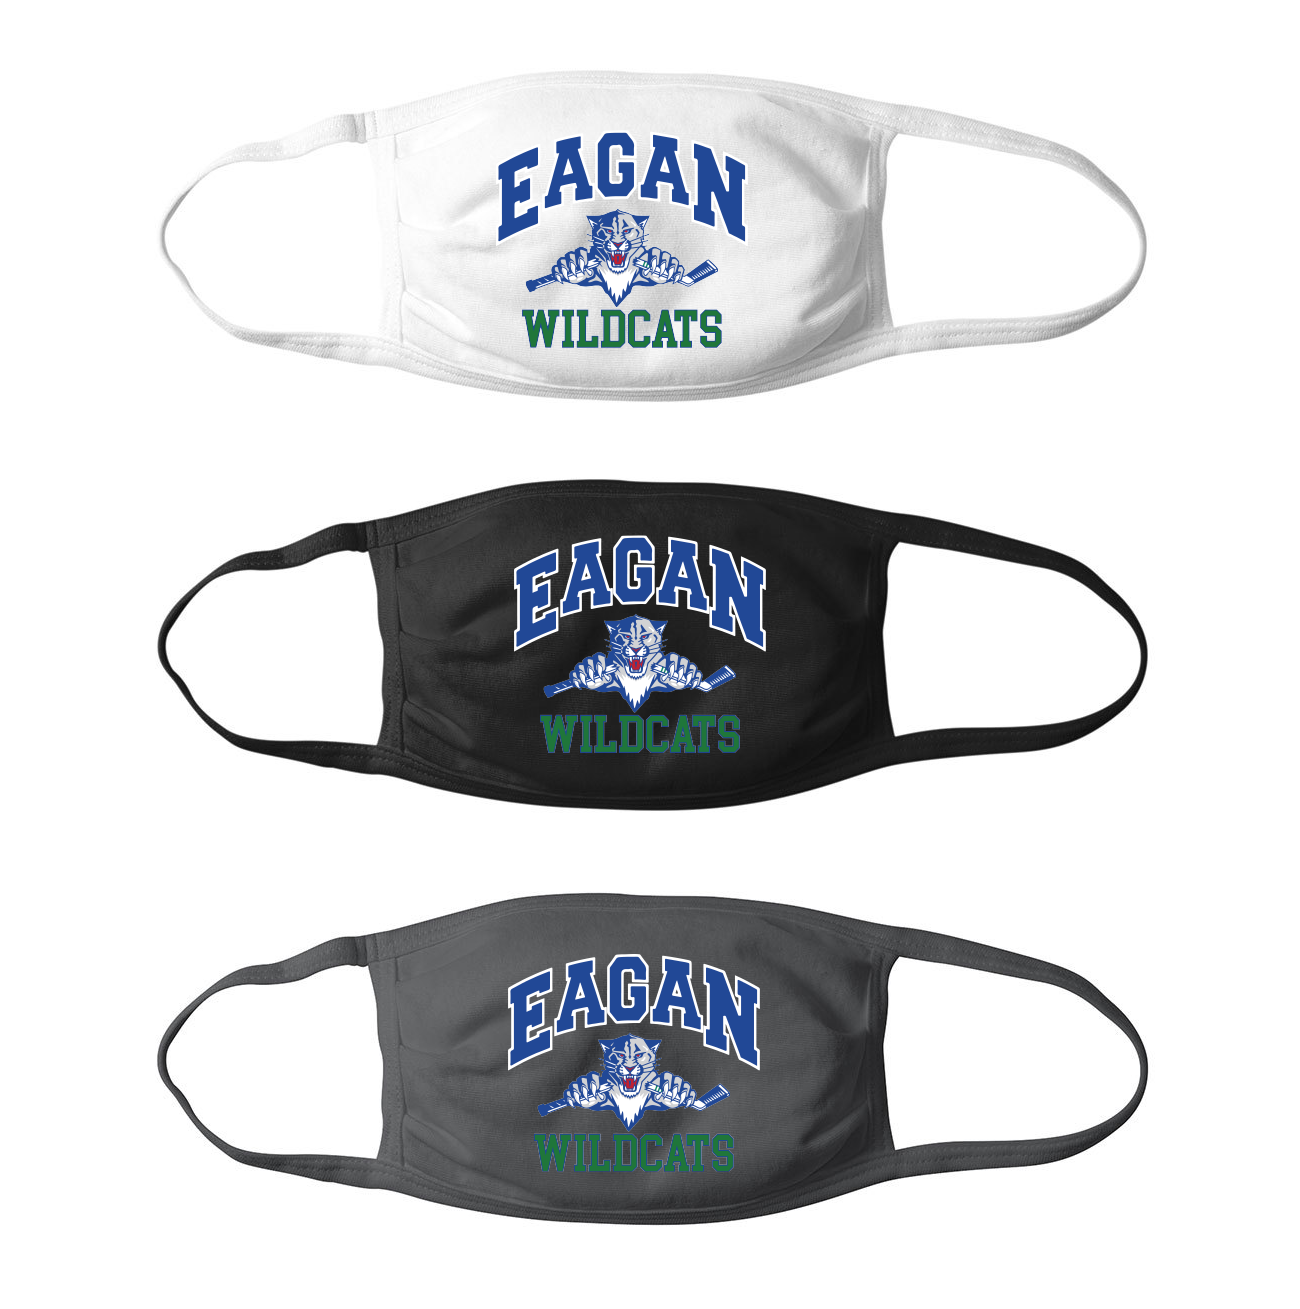 Eagan Wildcats Hockey Mask - Adult